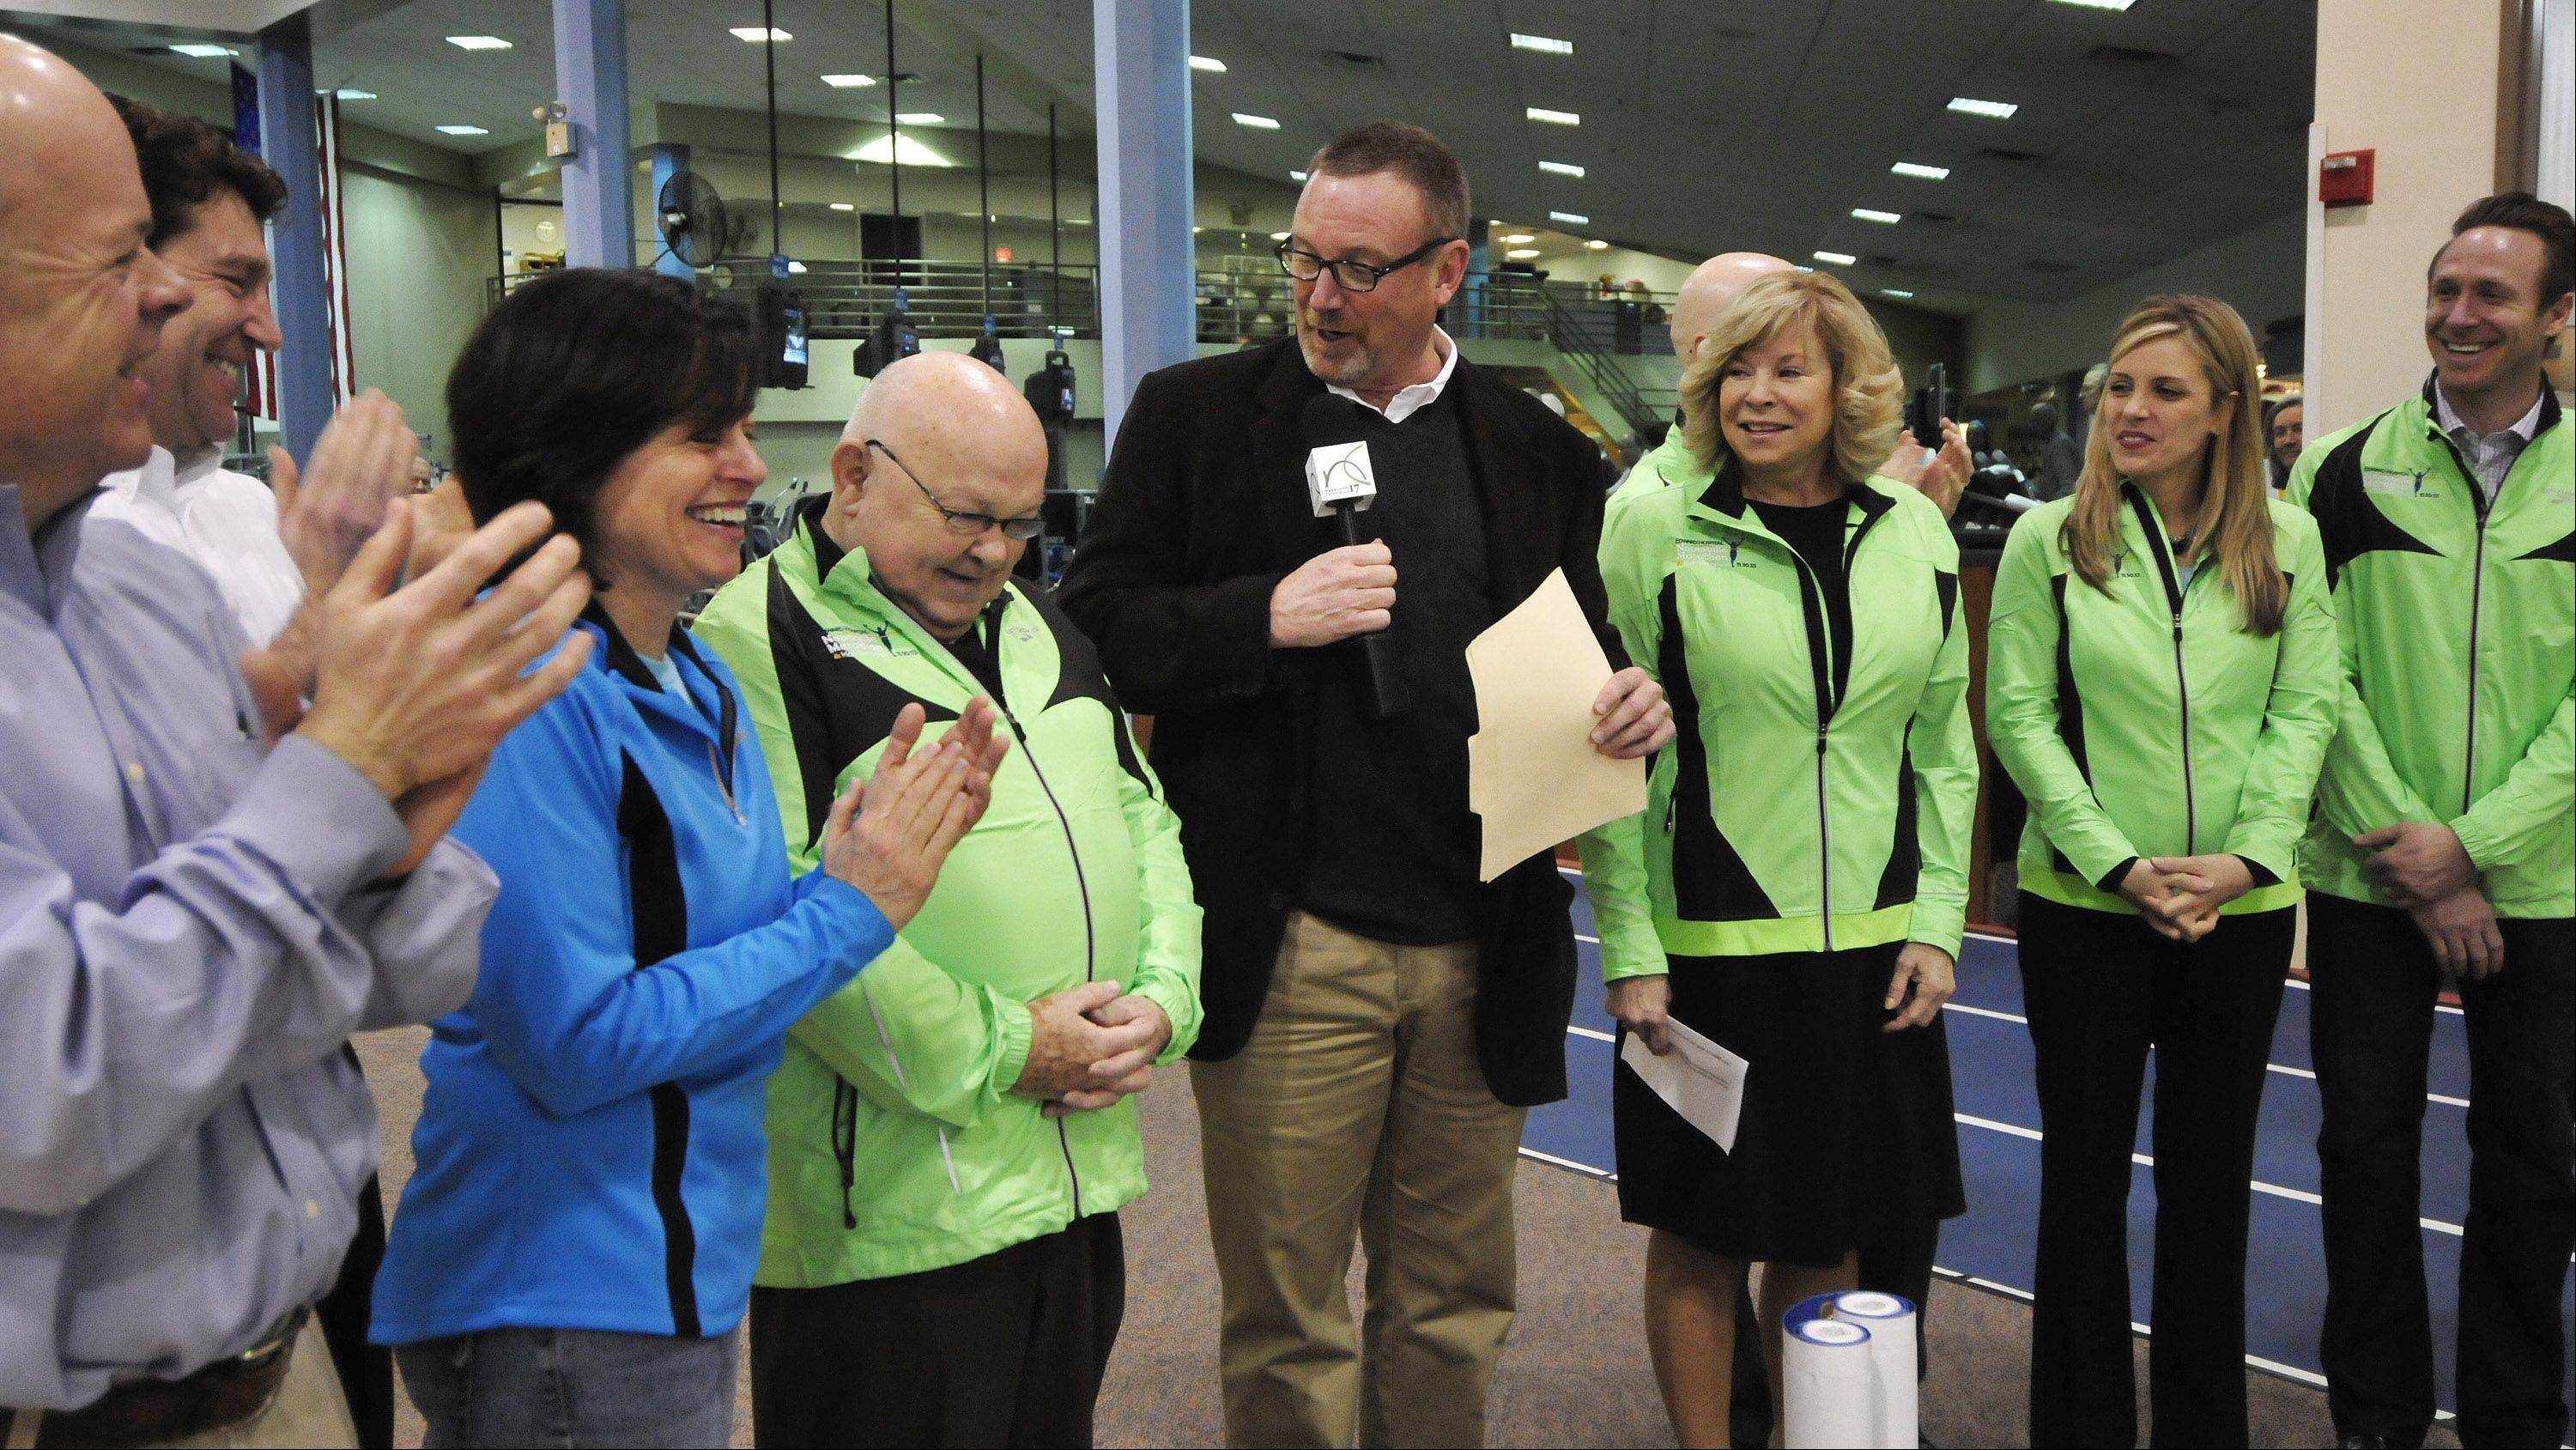 Naperville Mayor George Pradel, third from left, acknowledges the applause after he fired up the crowd with a rousing invitation to run in the city's inaugural marathon.